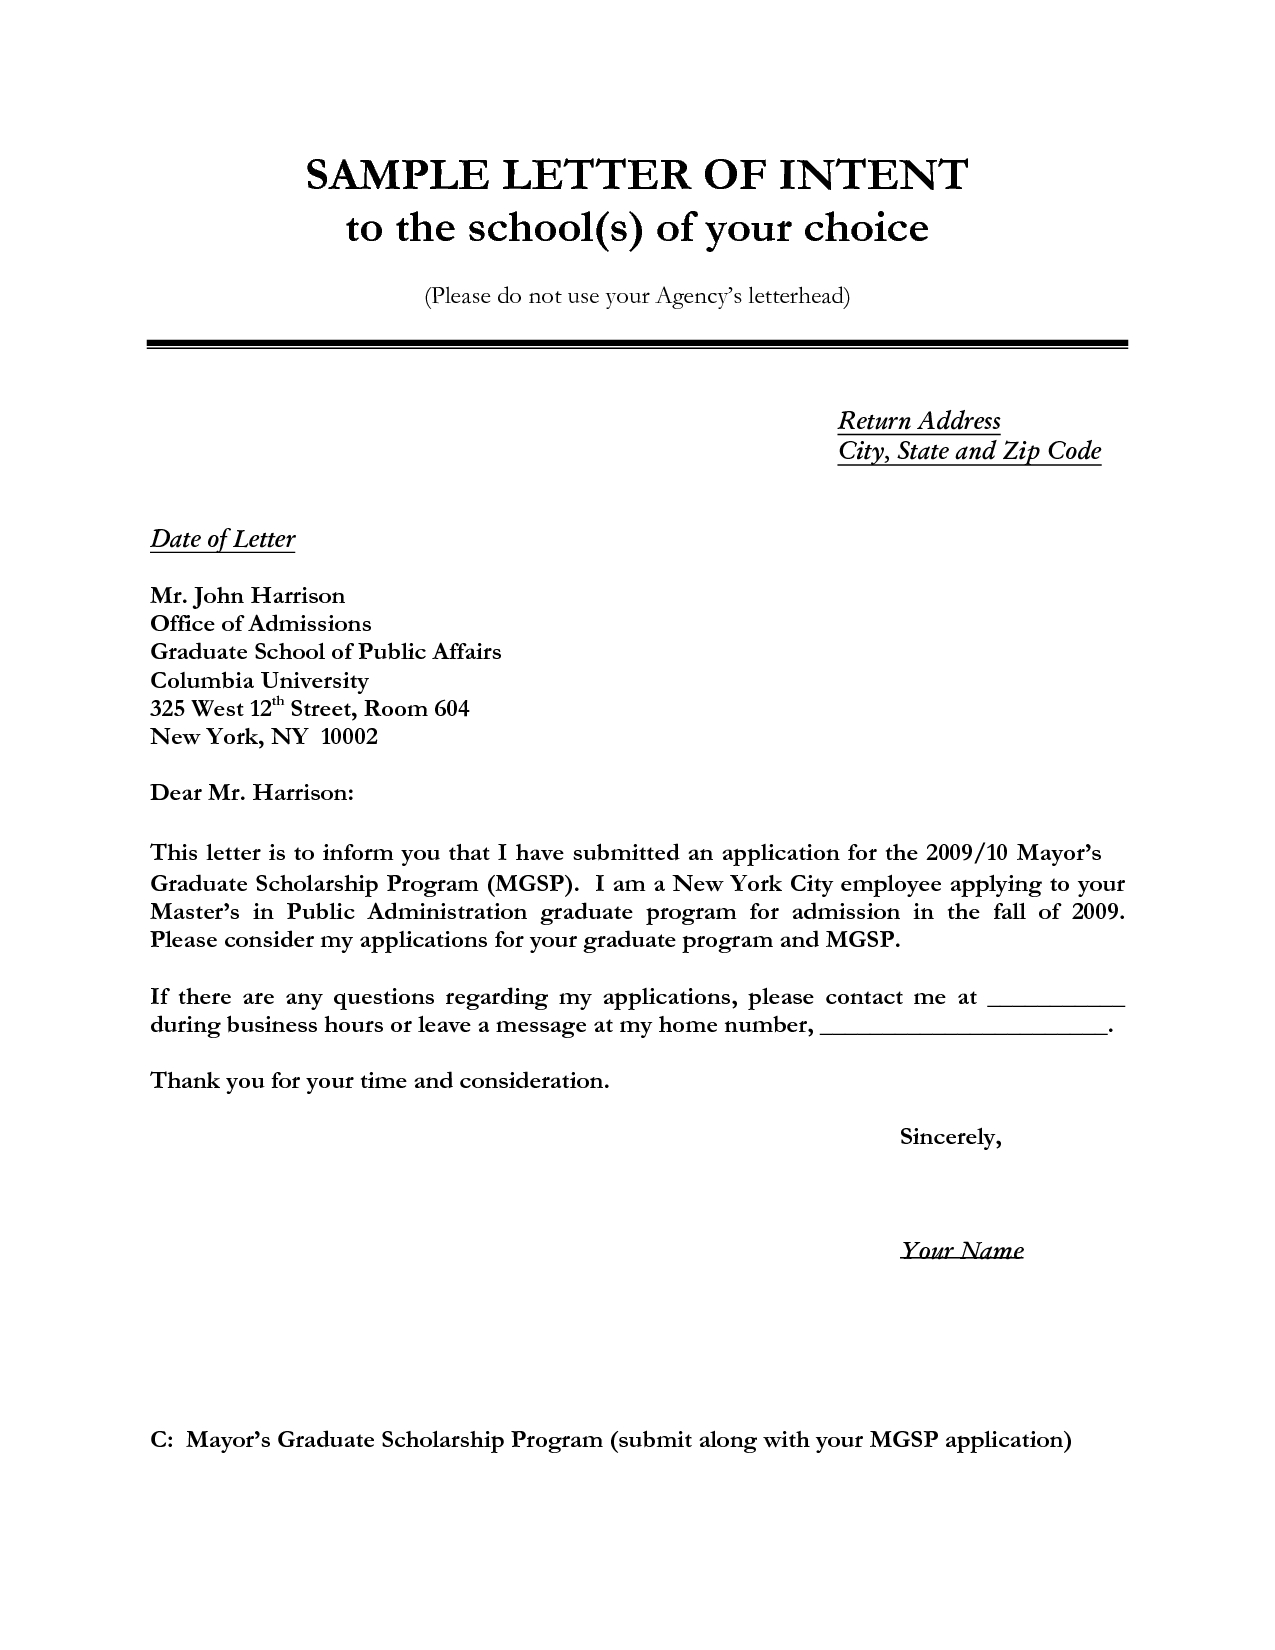 Letter Of Intent Construction Template - Letter Of Intent Sample